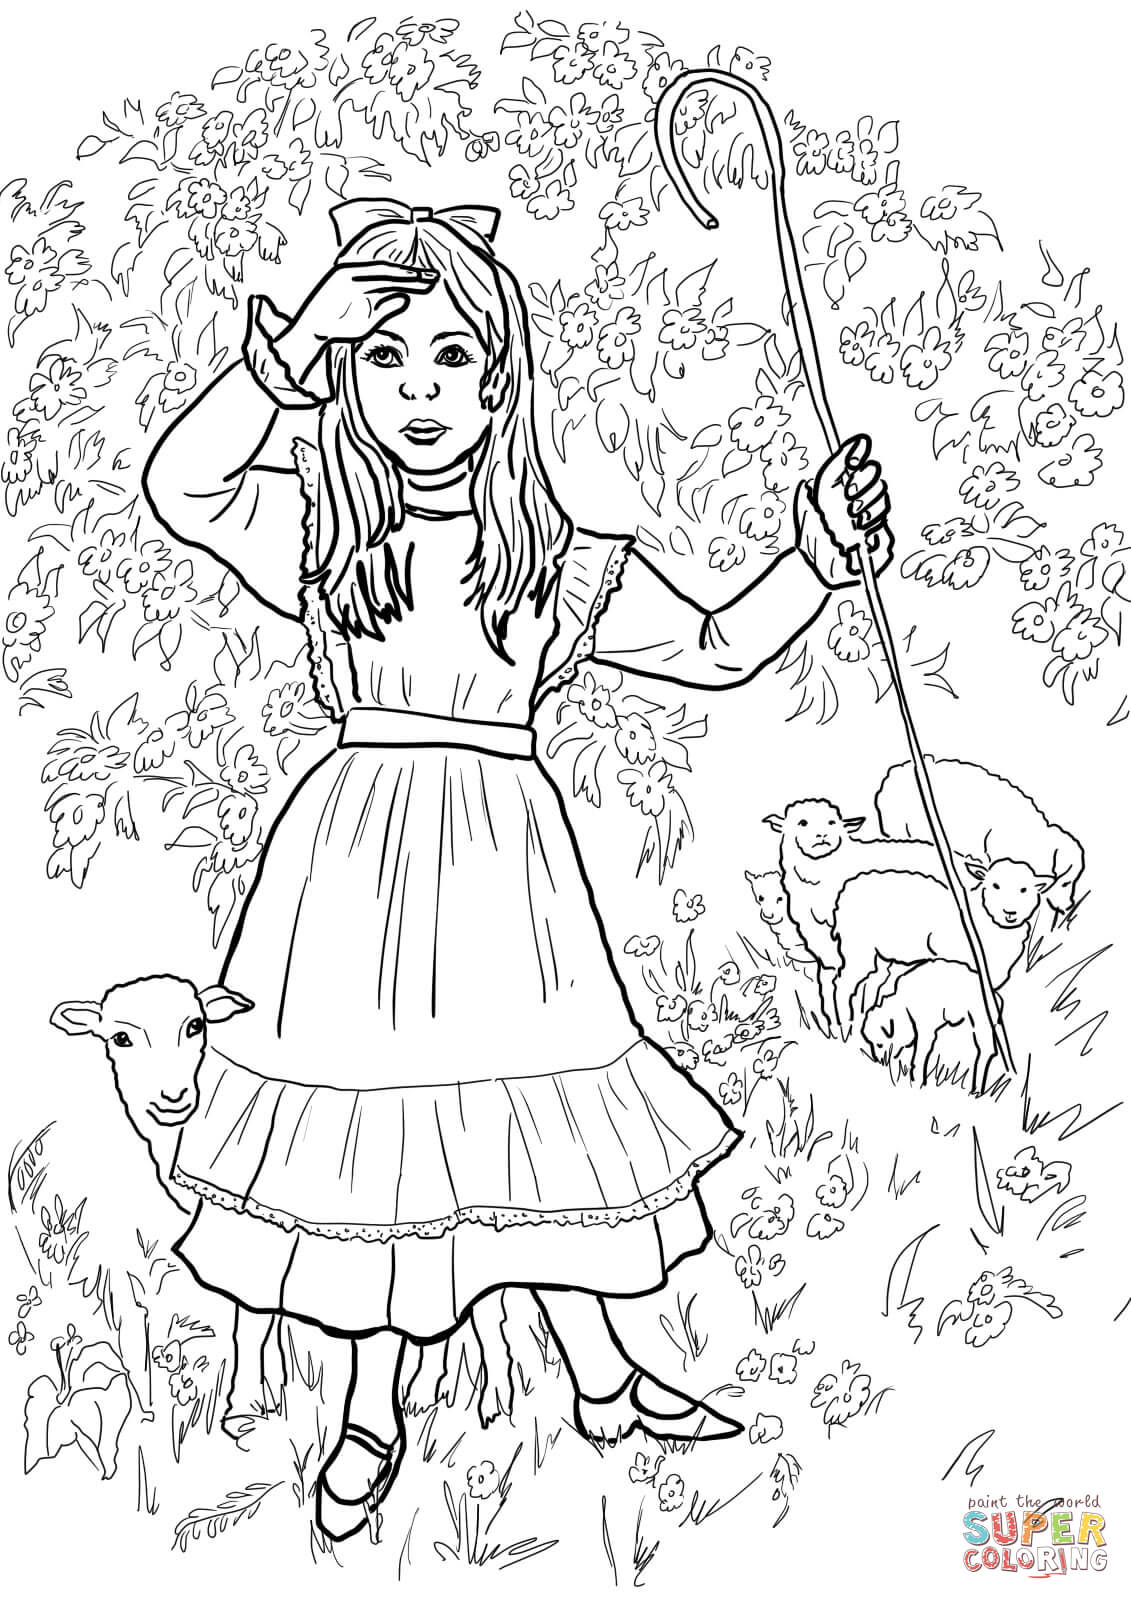 Little Bo Peep Nursery Rhyme Coloring Page